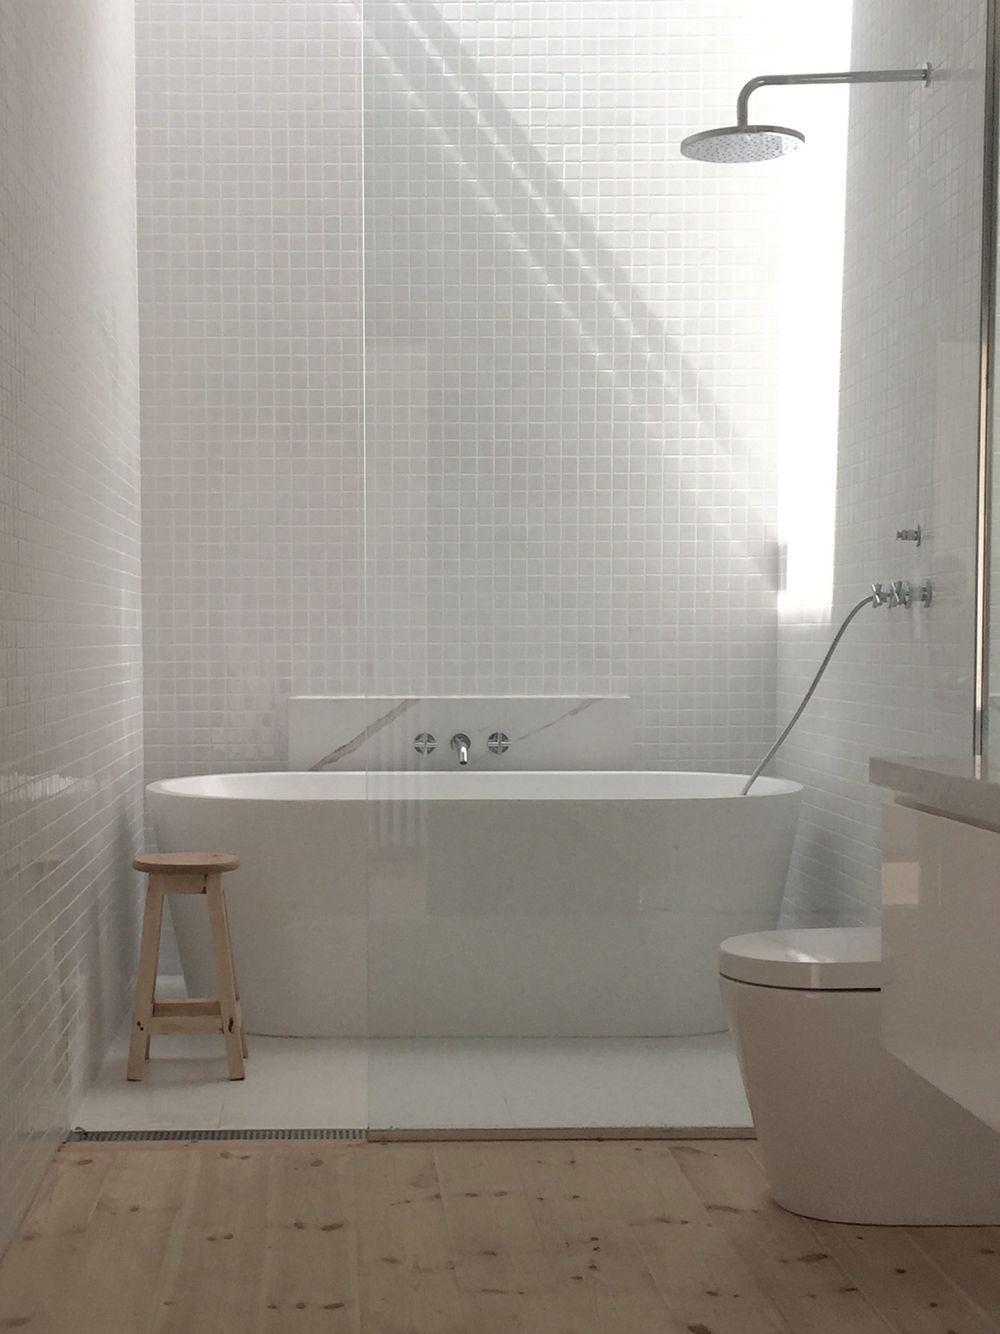 Bathroom Bathtub Latest Modern Contemporary Design And: Main Bathroom, Gloss White 30x30 Tiles, Matt White 600 X